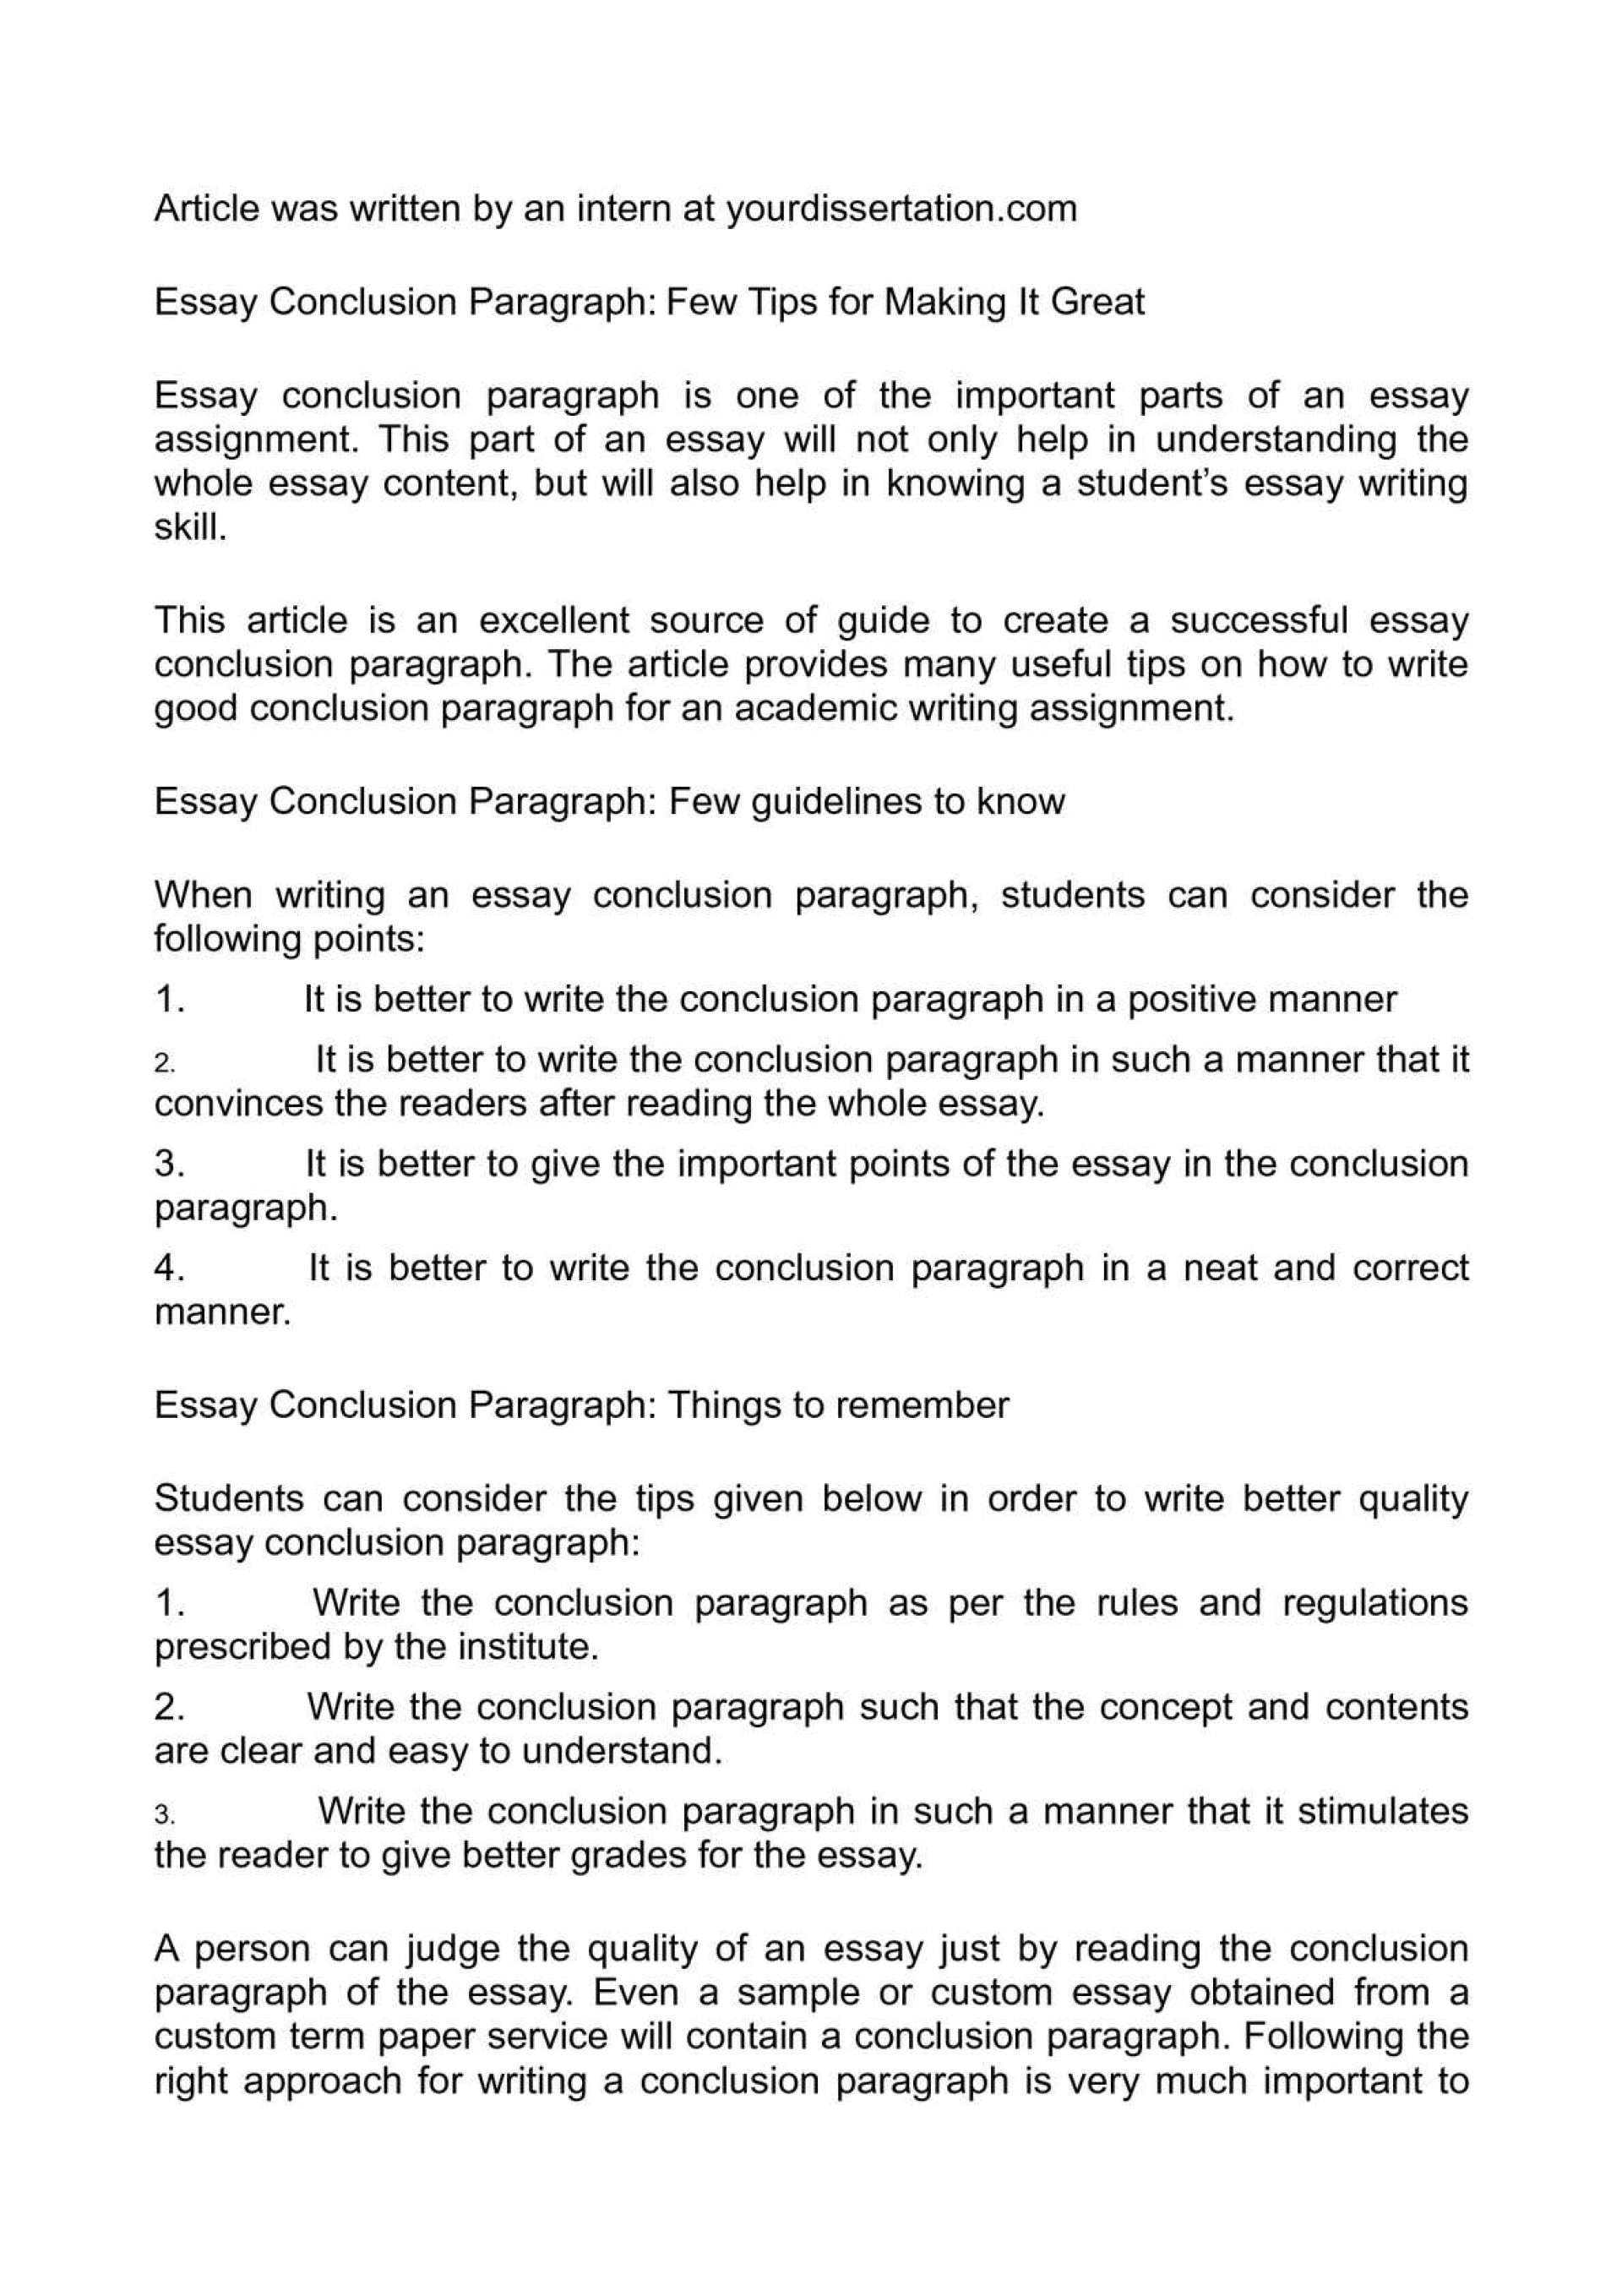 004 Essay Example P1 Conclusion Awesome Paragraph Argumentative Abortion Persuasive 1920